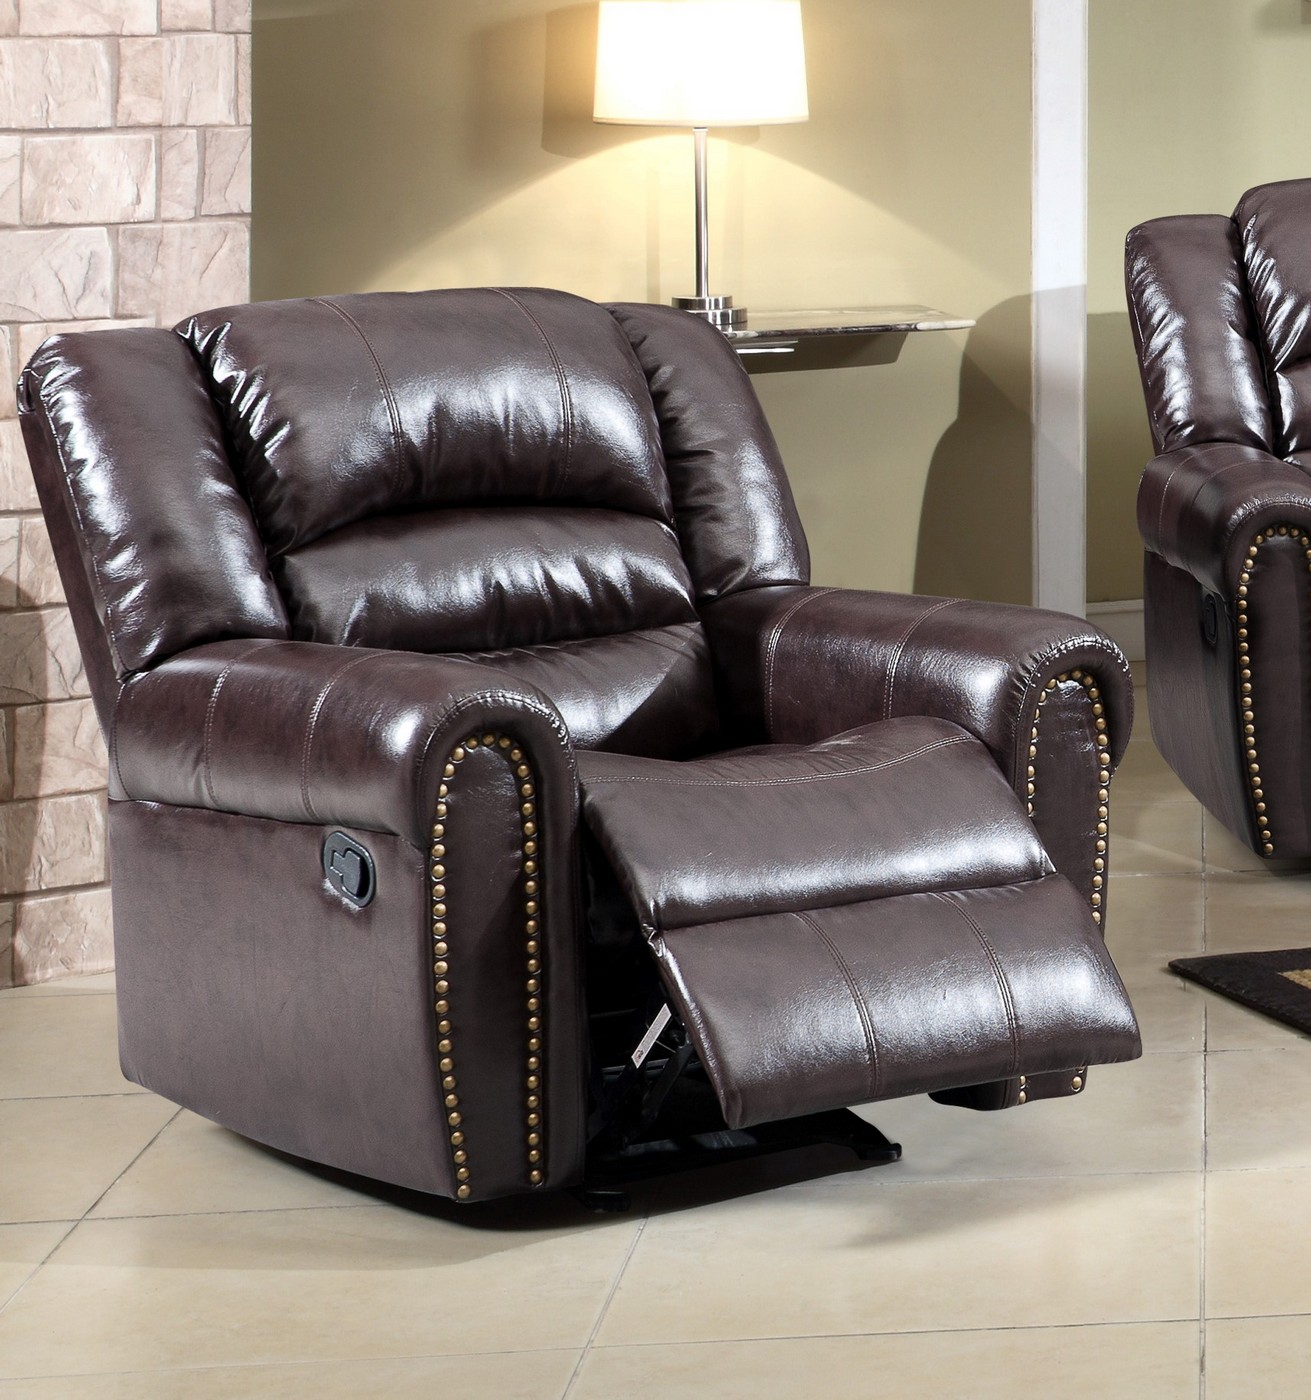 brown leather rocking chair hanging early settler 684 rocker reclining with nailhead trim